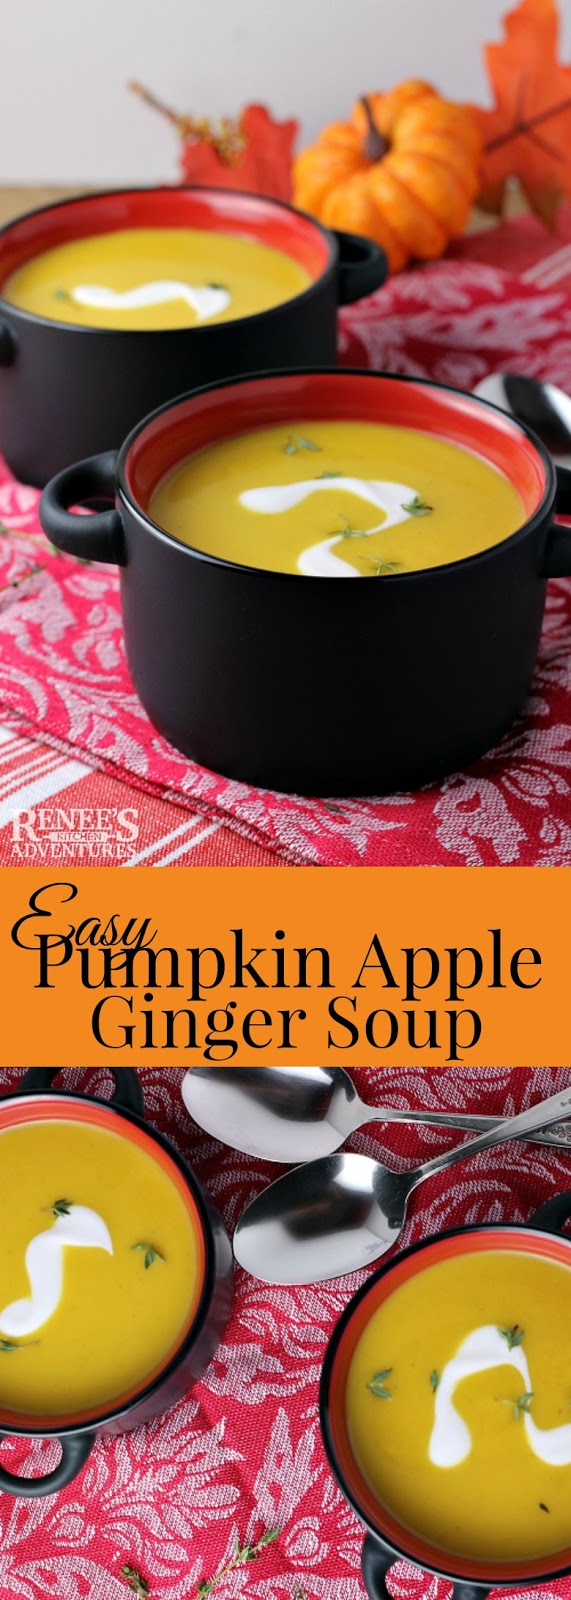 Easy Pumpkin Apple Ginger Soup | Renee's Kitchen Adventures - Easy healthy savory and sweet soup recipe perfect to serve at your holiday meal as an appetizer or for a light lunch #GiantEaglePerks #ad #soup #souprecipe #easyrecipeforsoup #easysouprecipe #pumpkinsoup #squashsoup #Thanksgiving